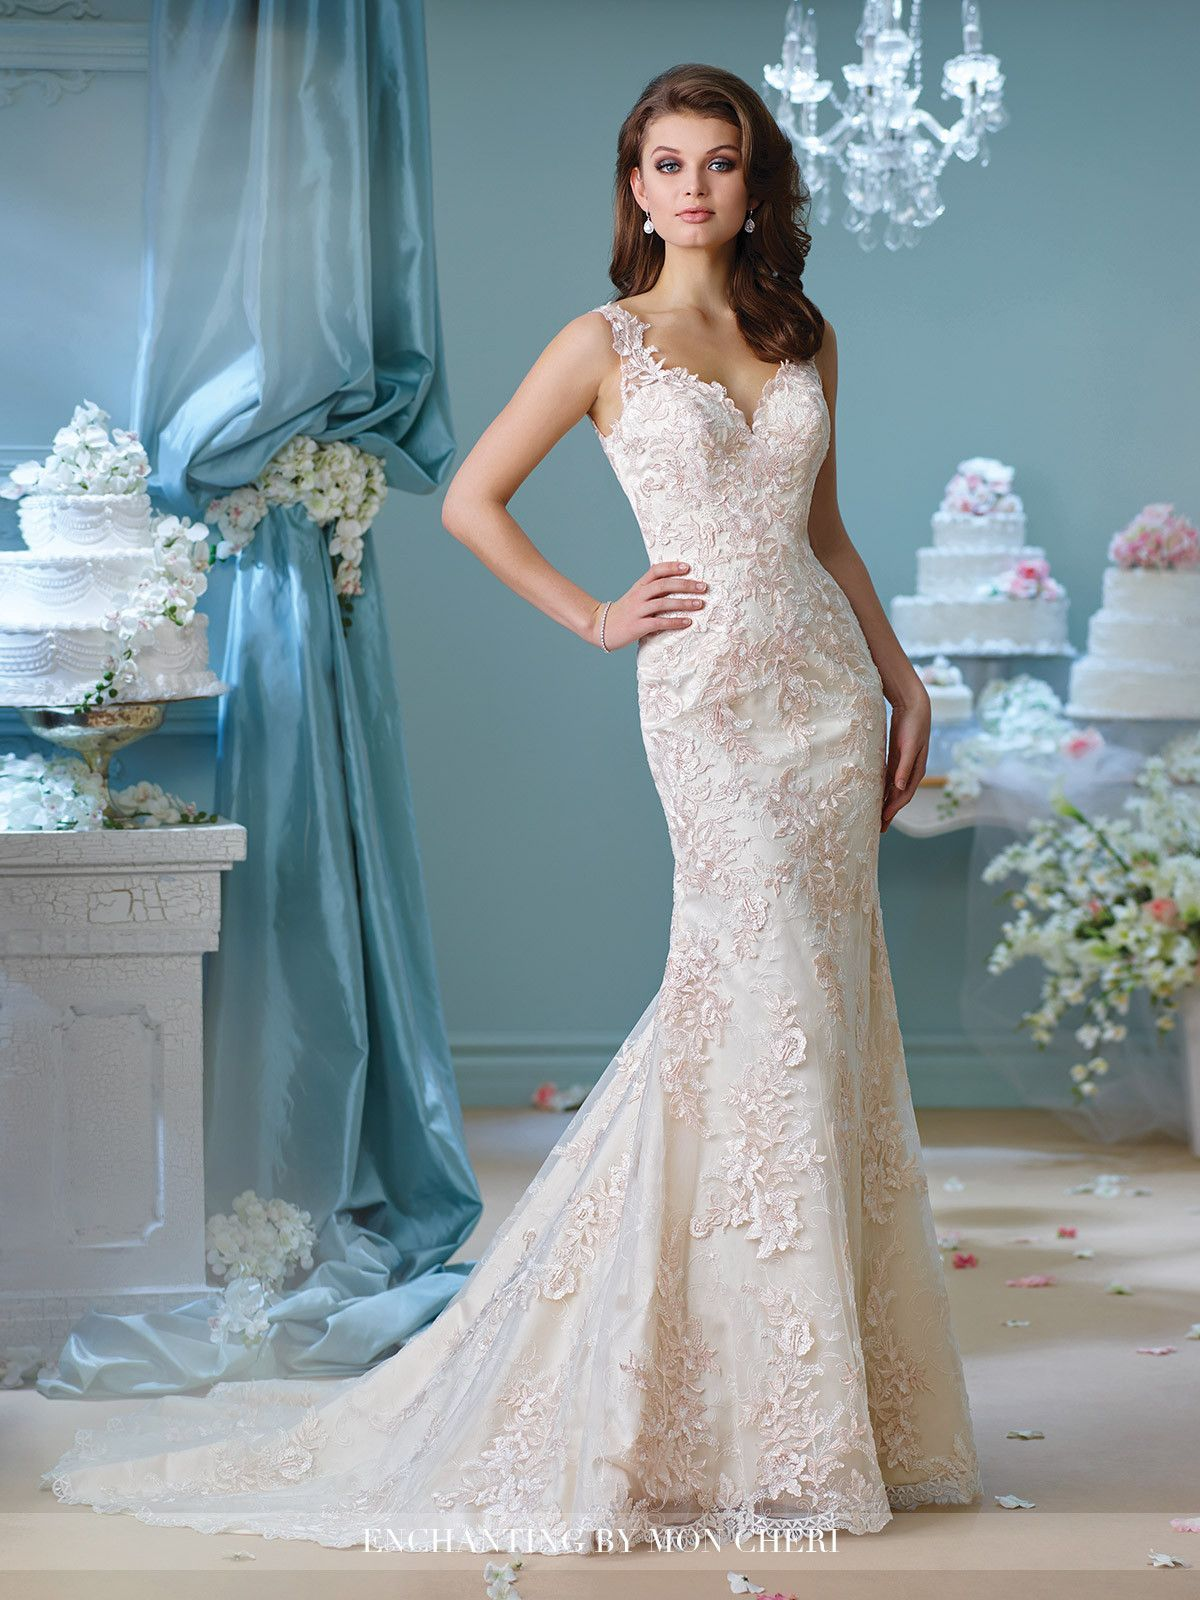 216163 - All Dressed Up, Bridal Gown